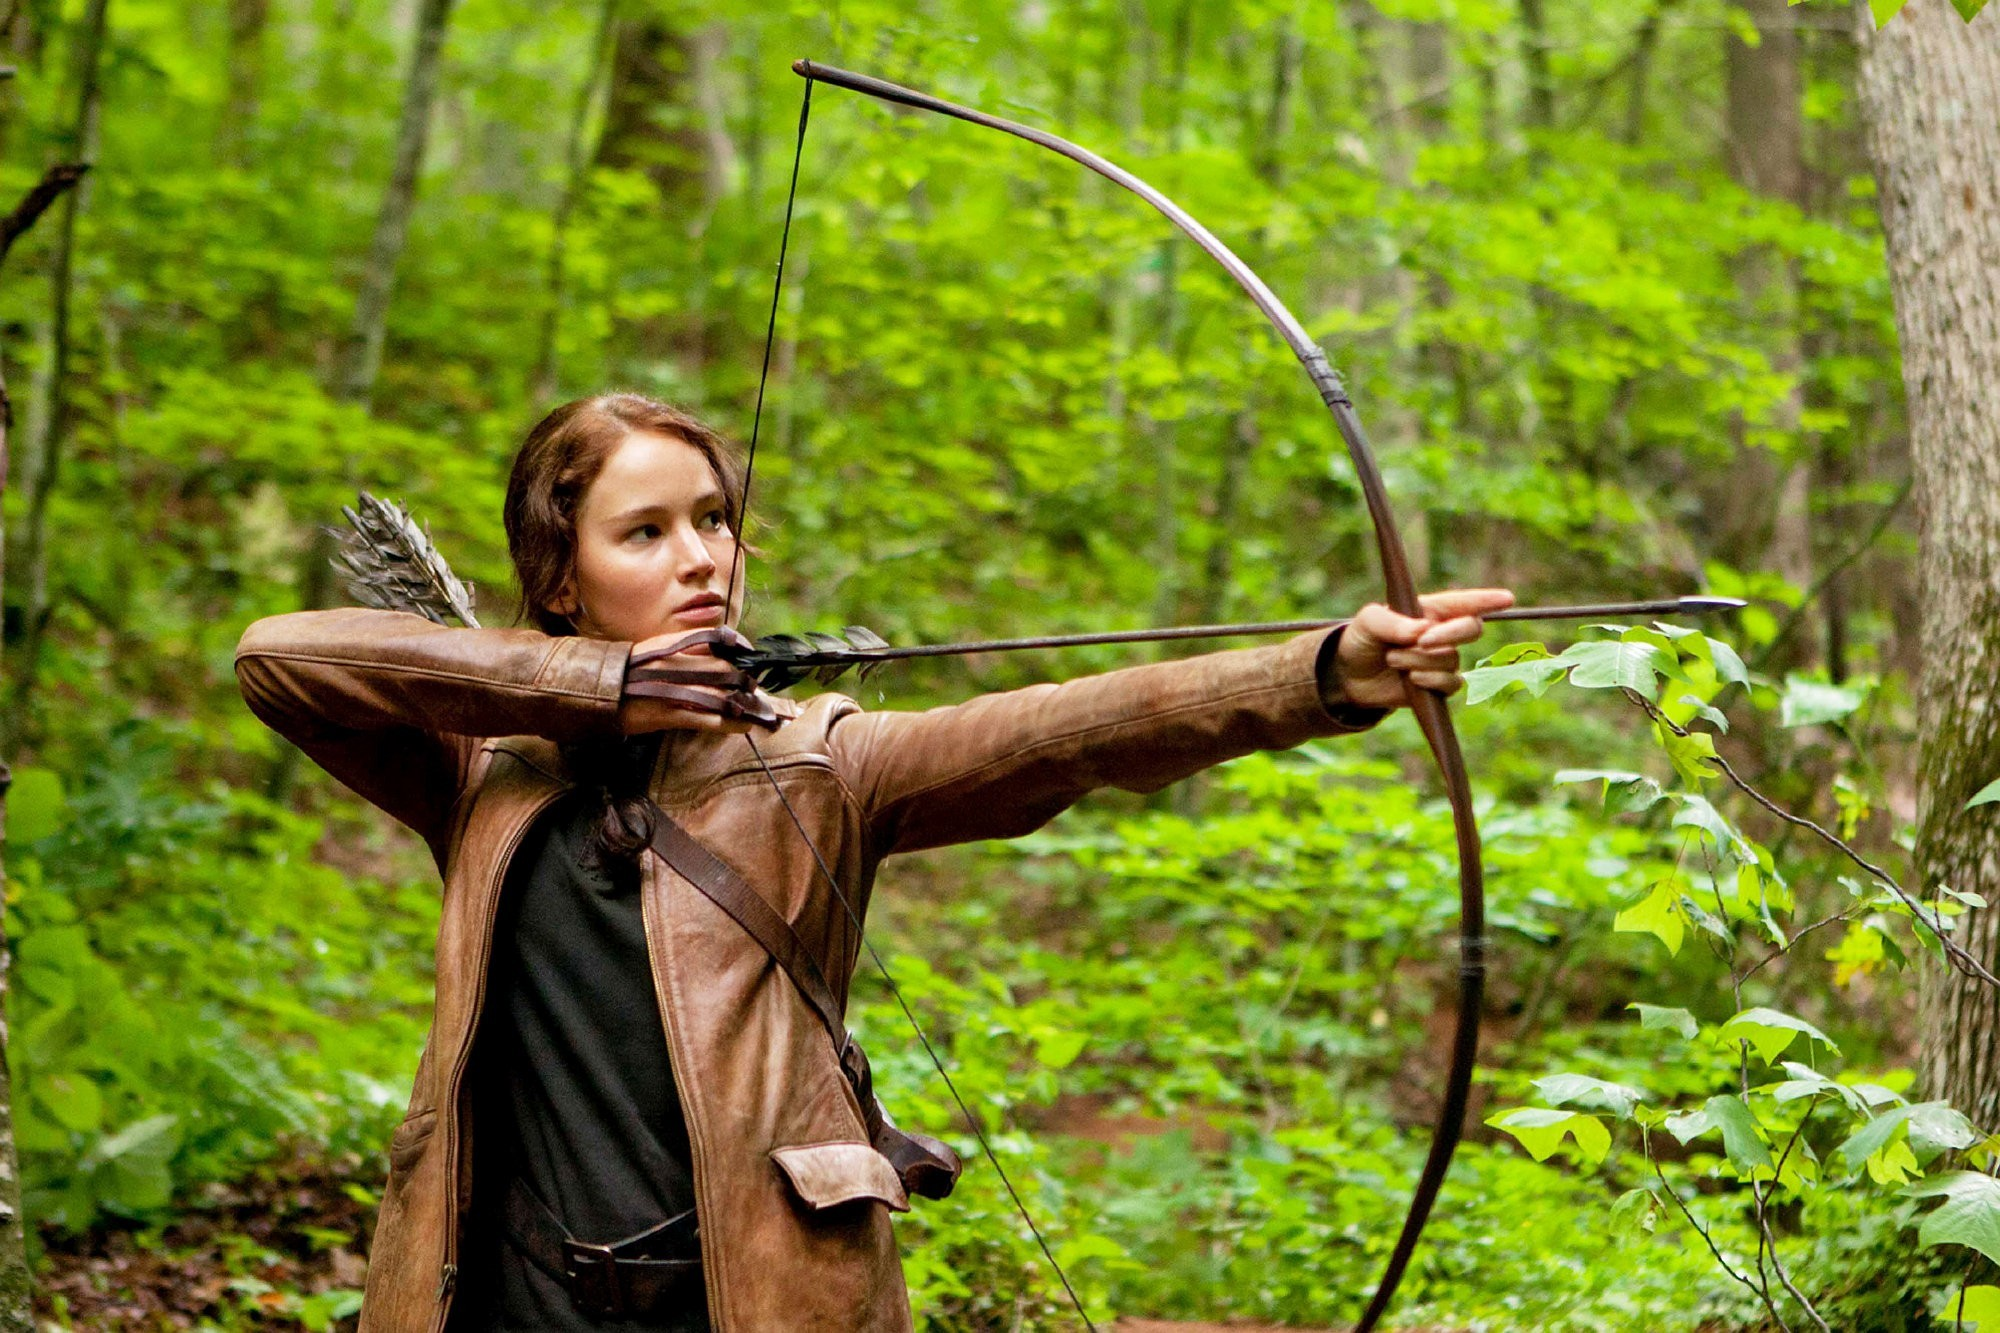 Jennifer-lawrence-stars-as-katniss-everdeen-in-the-hunger-games-haters